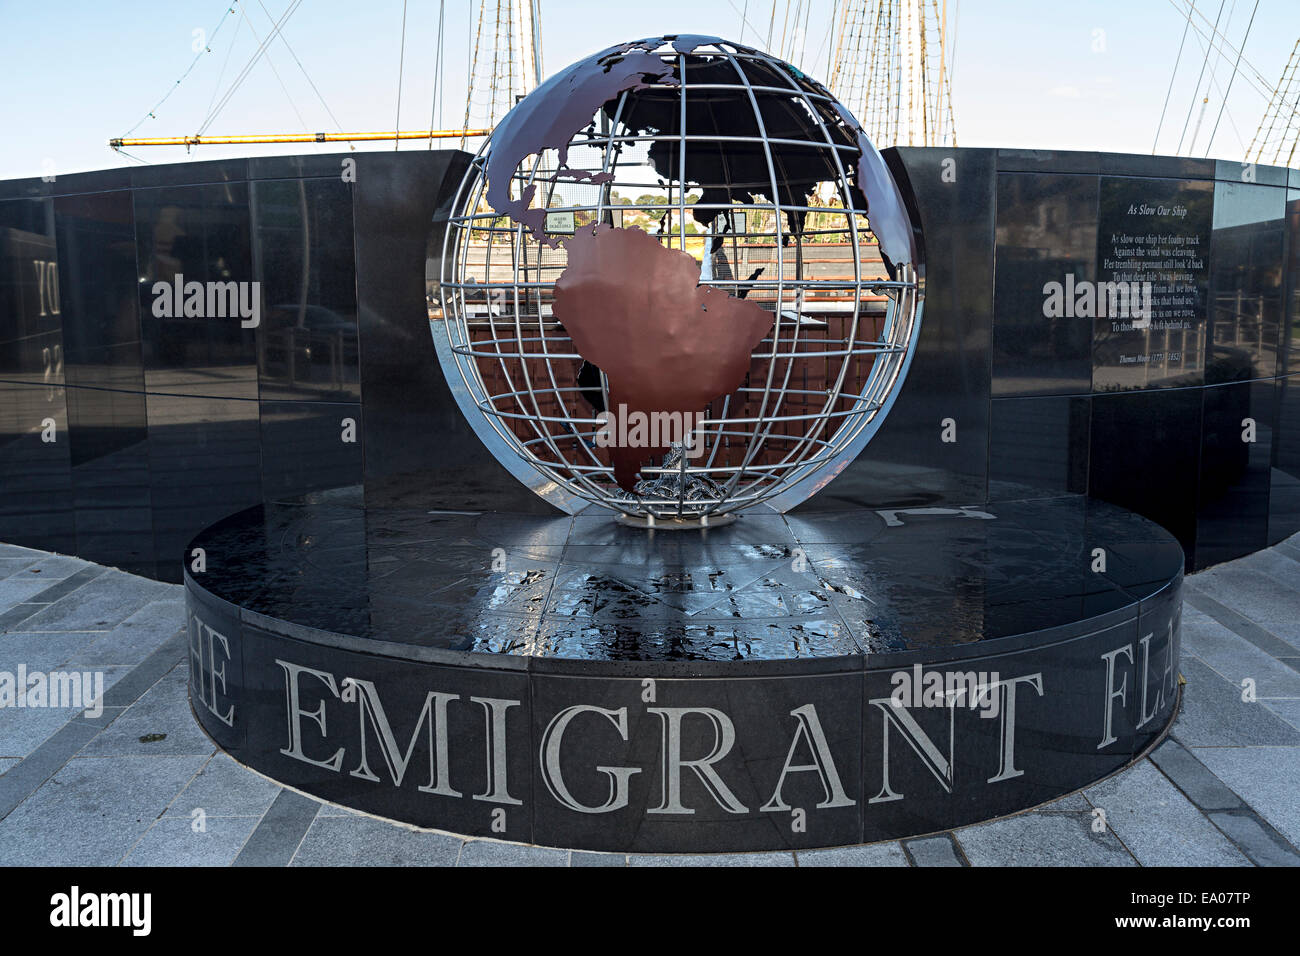 The Emigrant Flame memorial and ship, New Ross, Co. Wexford, Ireland - Stock Image